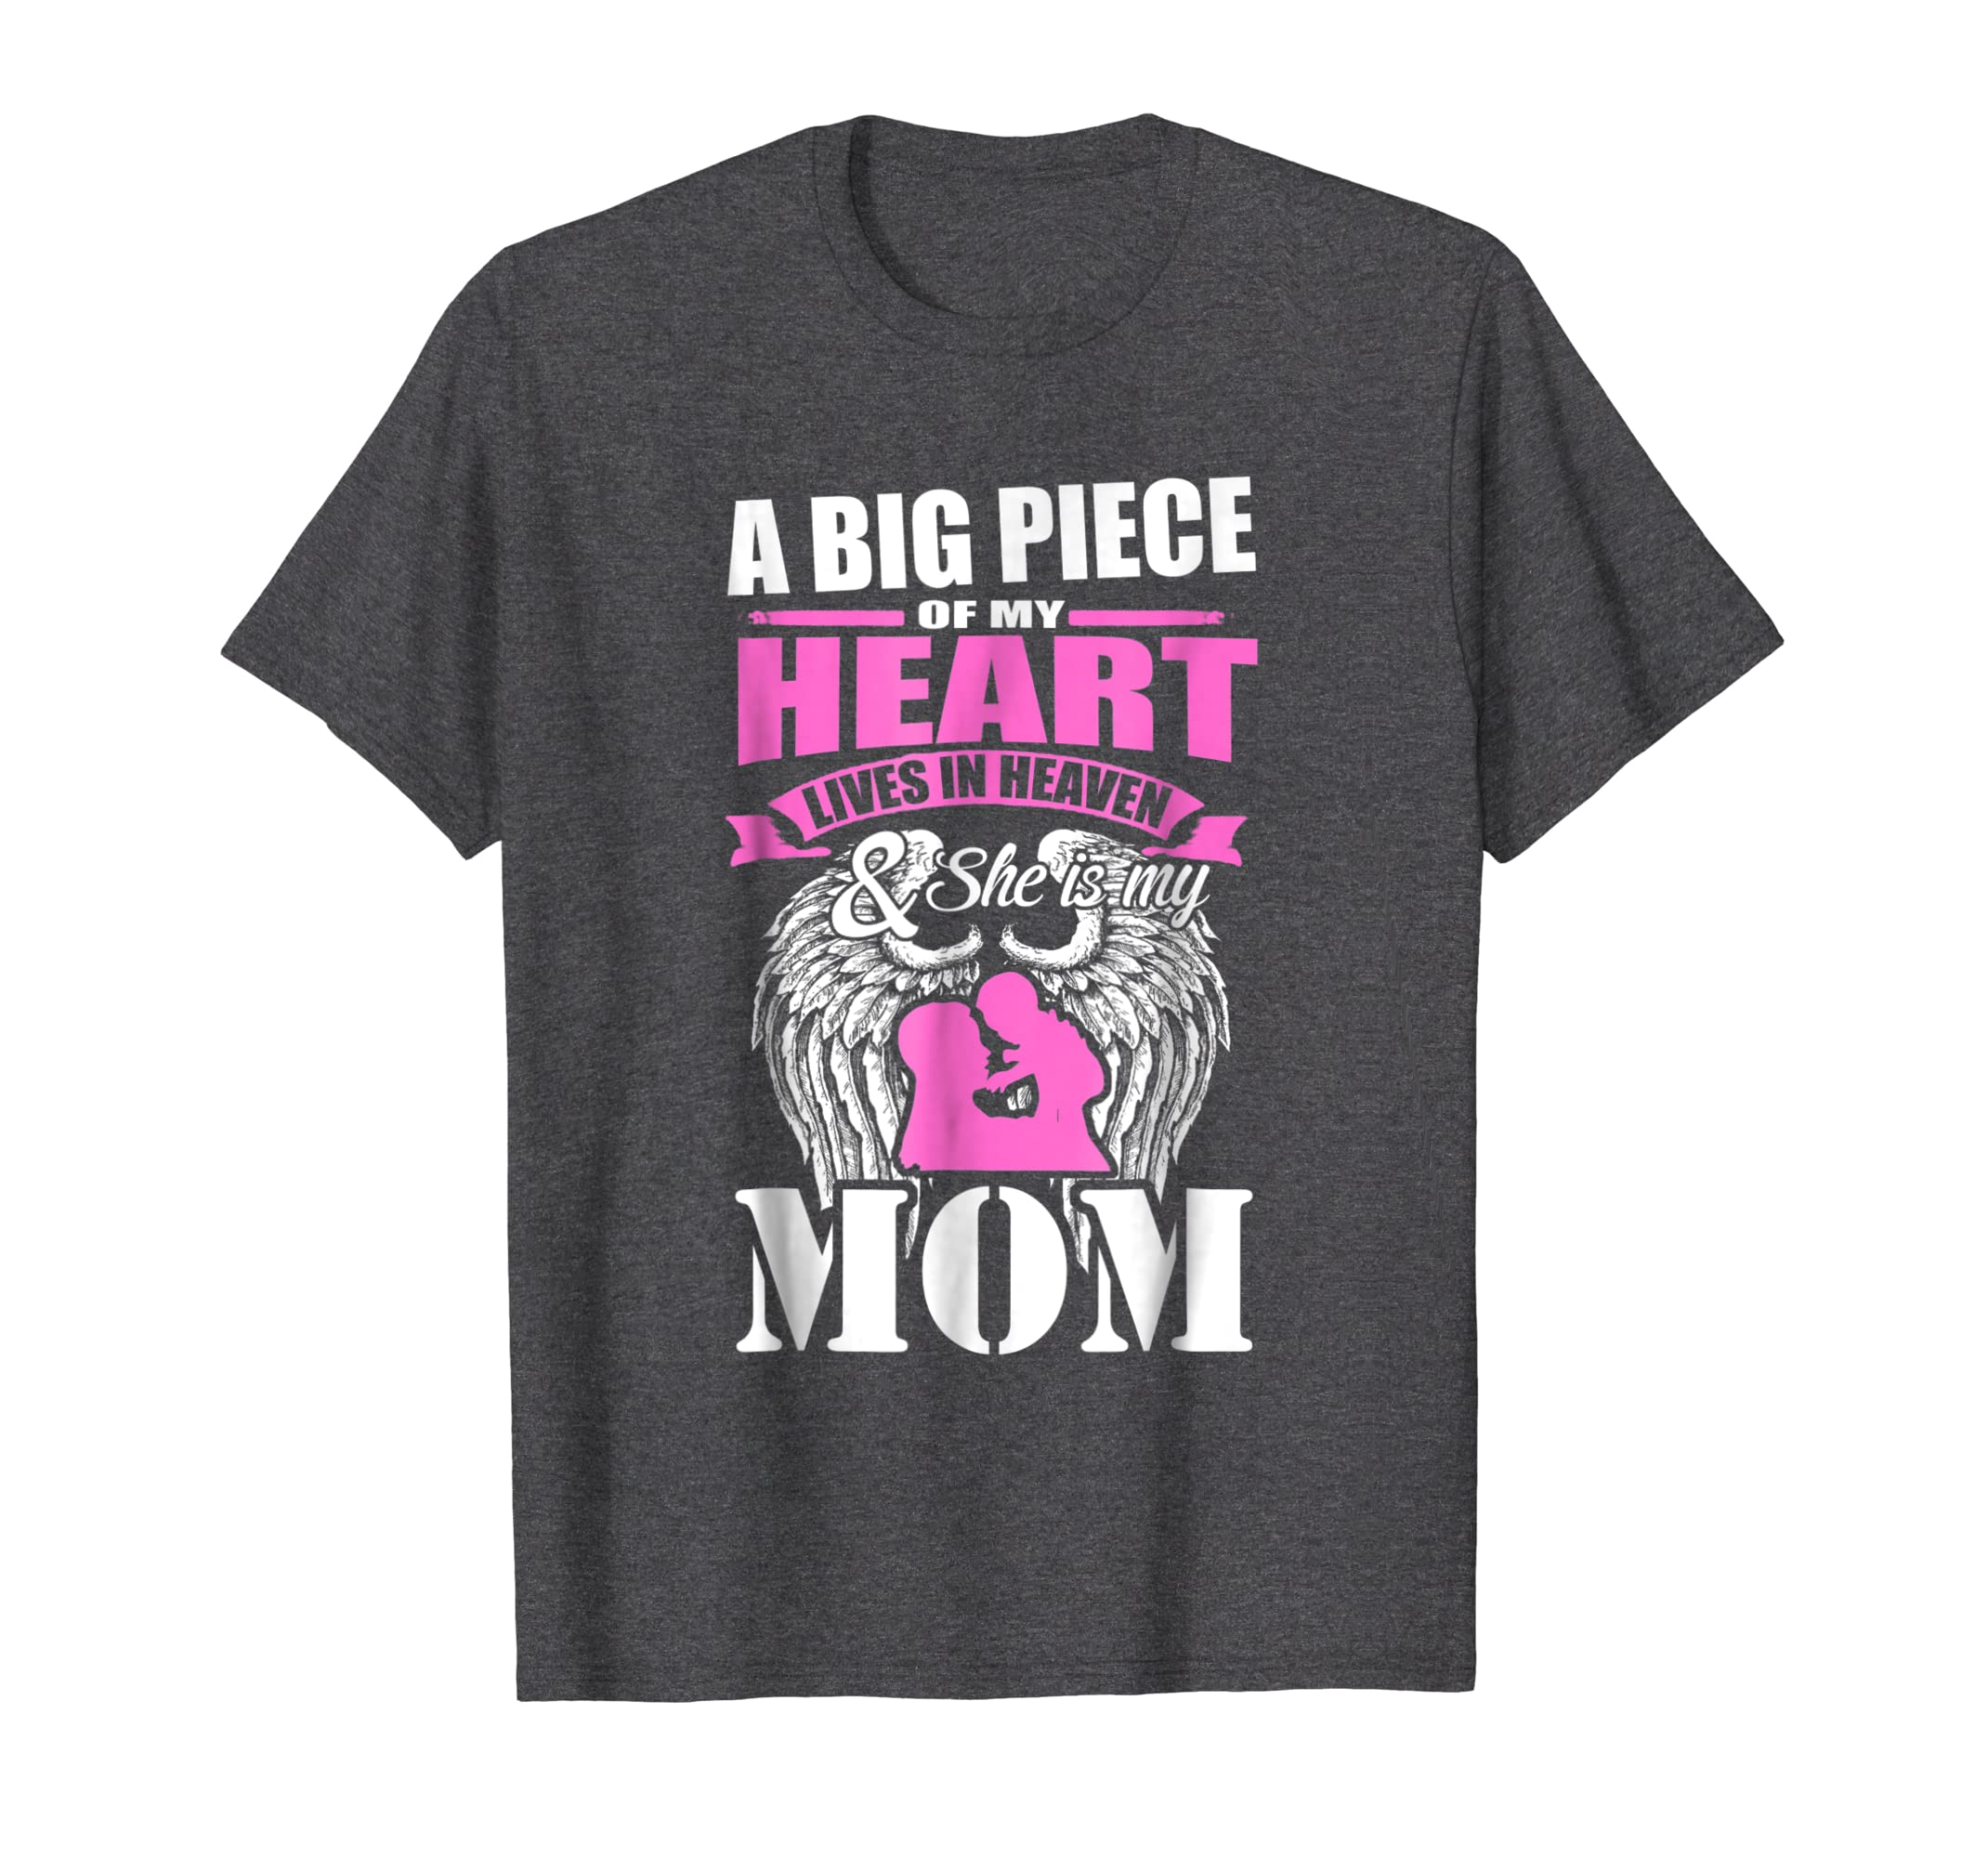 A Big Piece Of My Heart Lives In Heaven and He Is My mom tee